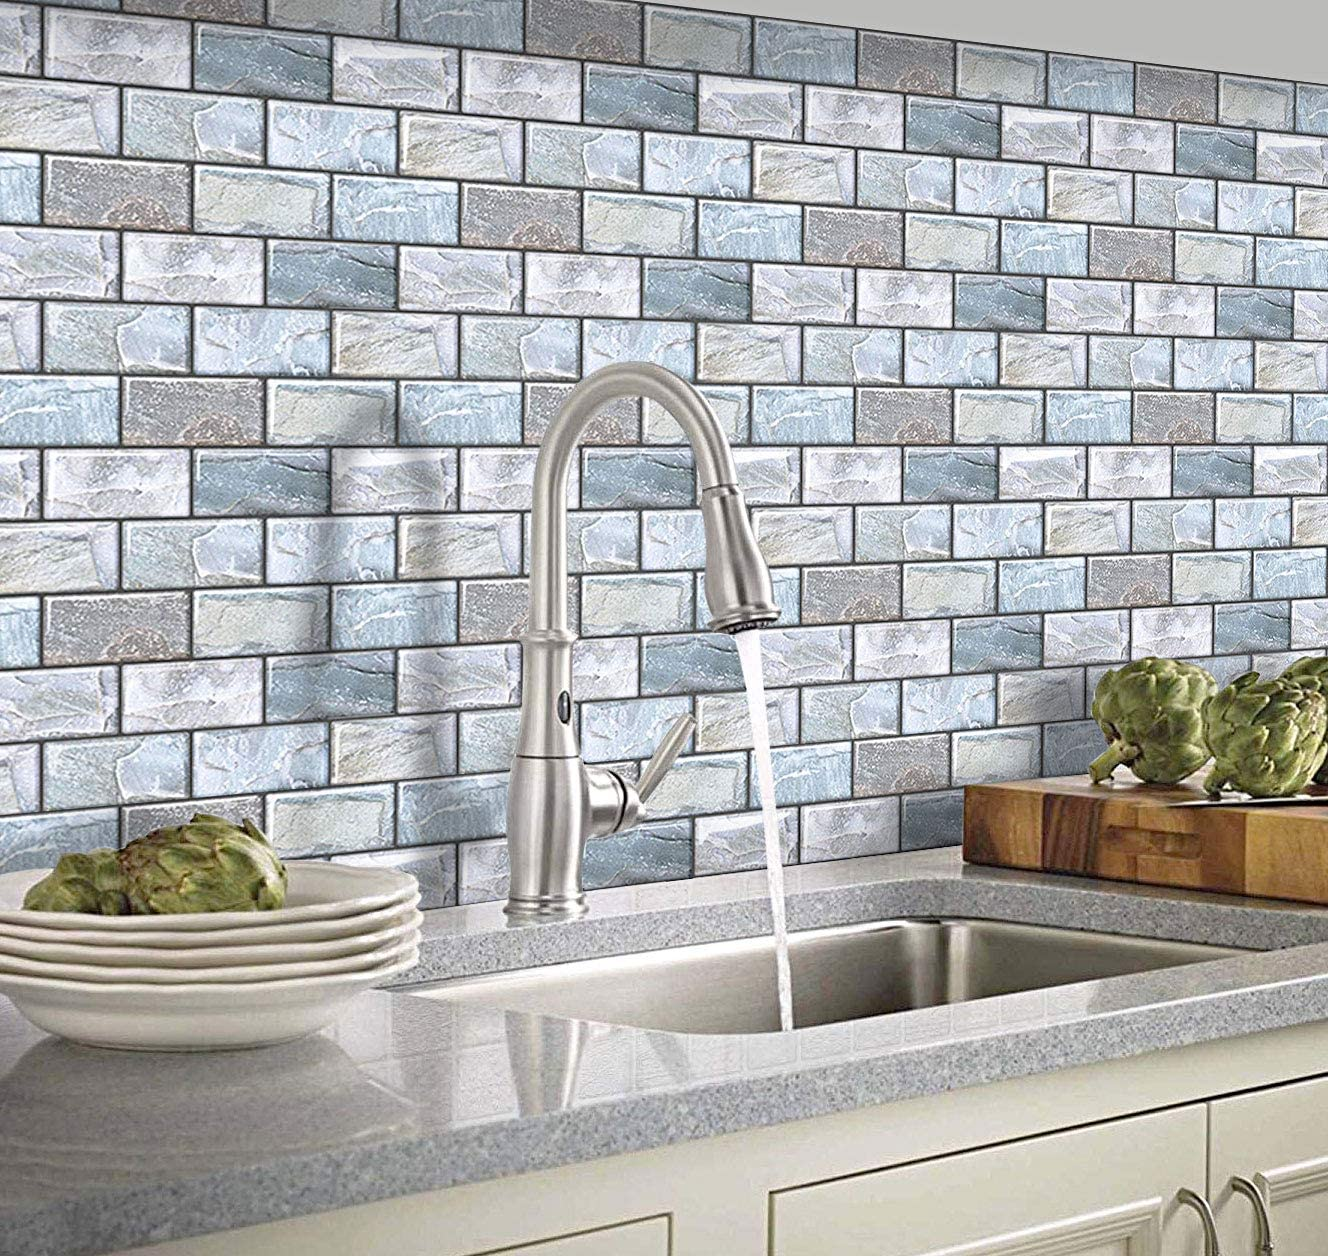 Yoillione 3d Mosaic Tile Stickers Bathroom Wall Tiles Stone Effect Wallpaper Self Adhesive Kitchen Tile Wall Sticker Blue Peel And Stick On Tiles Backsplash Decorative Wall Panels 3d Brick Tiles Amazon Co Uk Kitchen